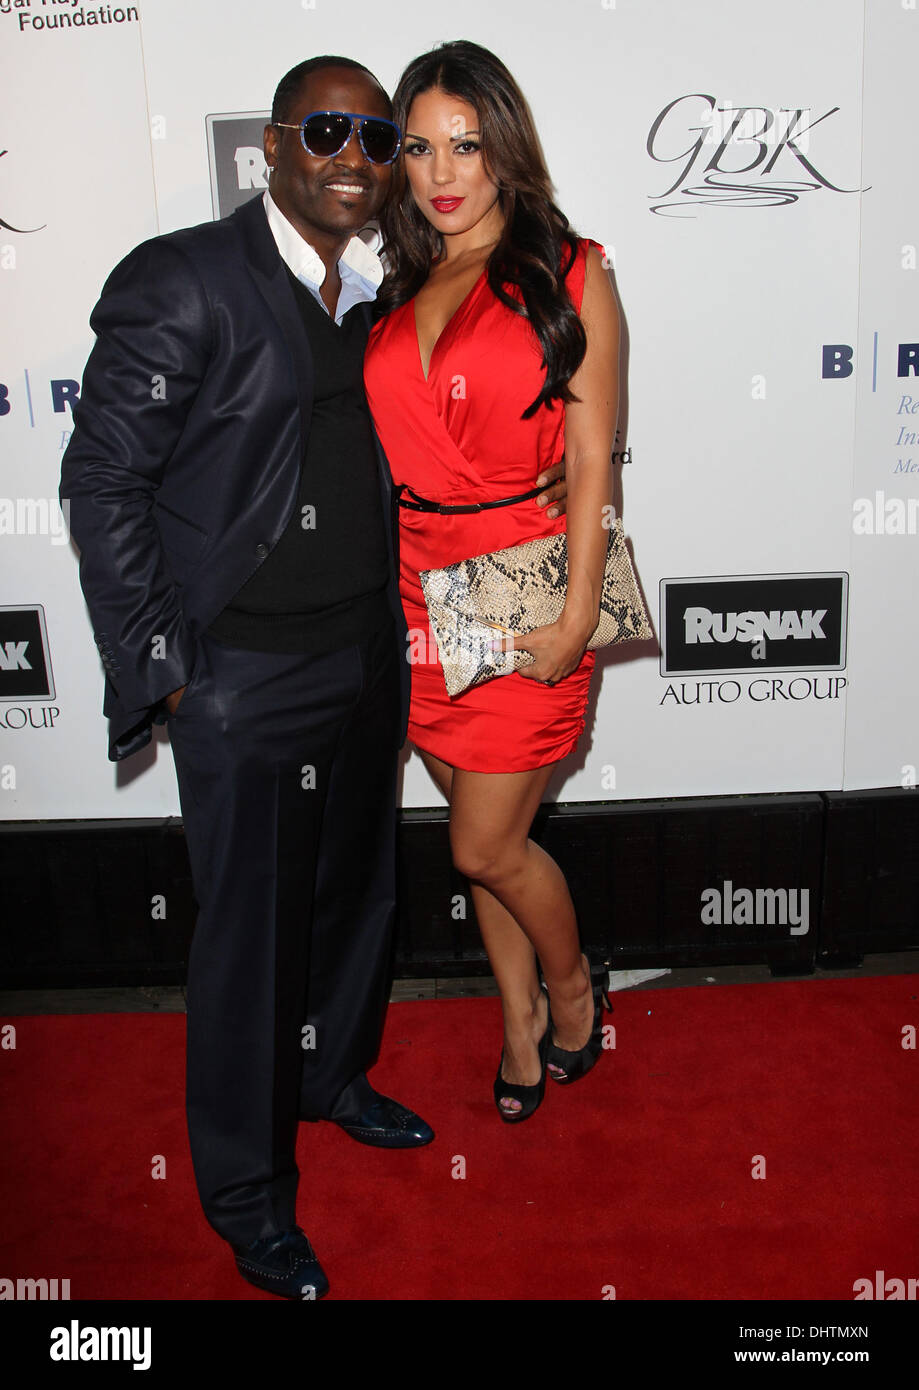 who is johnny gill dating Arriving at the sundance film festival on jan 18, tracey edmonds was ready to let off some steam hitting the myspace night at tao that evening, edmonds— still reeling from her jan 15 split from eddie murphy just two weeks after their nuptials—quickly retreated to the vip area with pregnant actress.